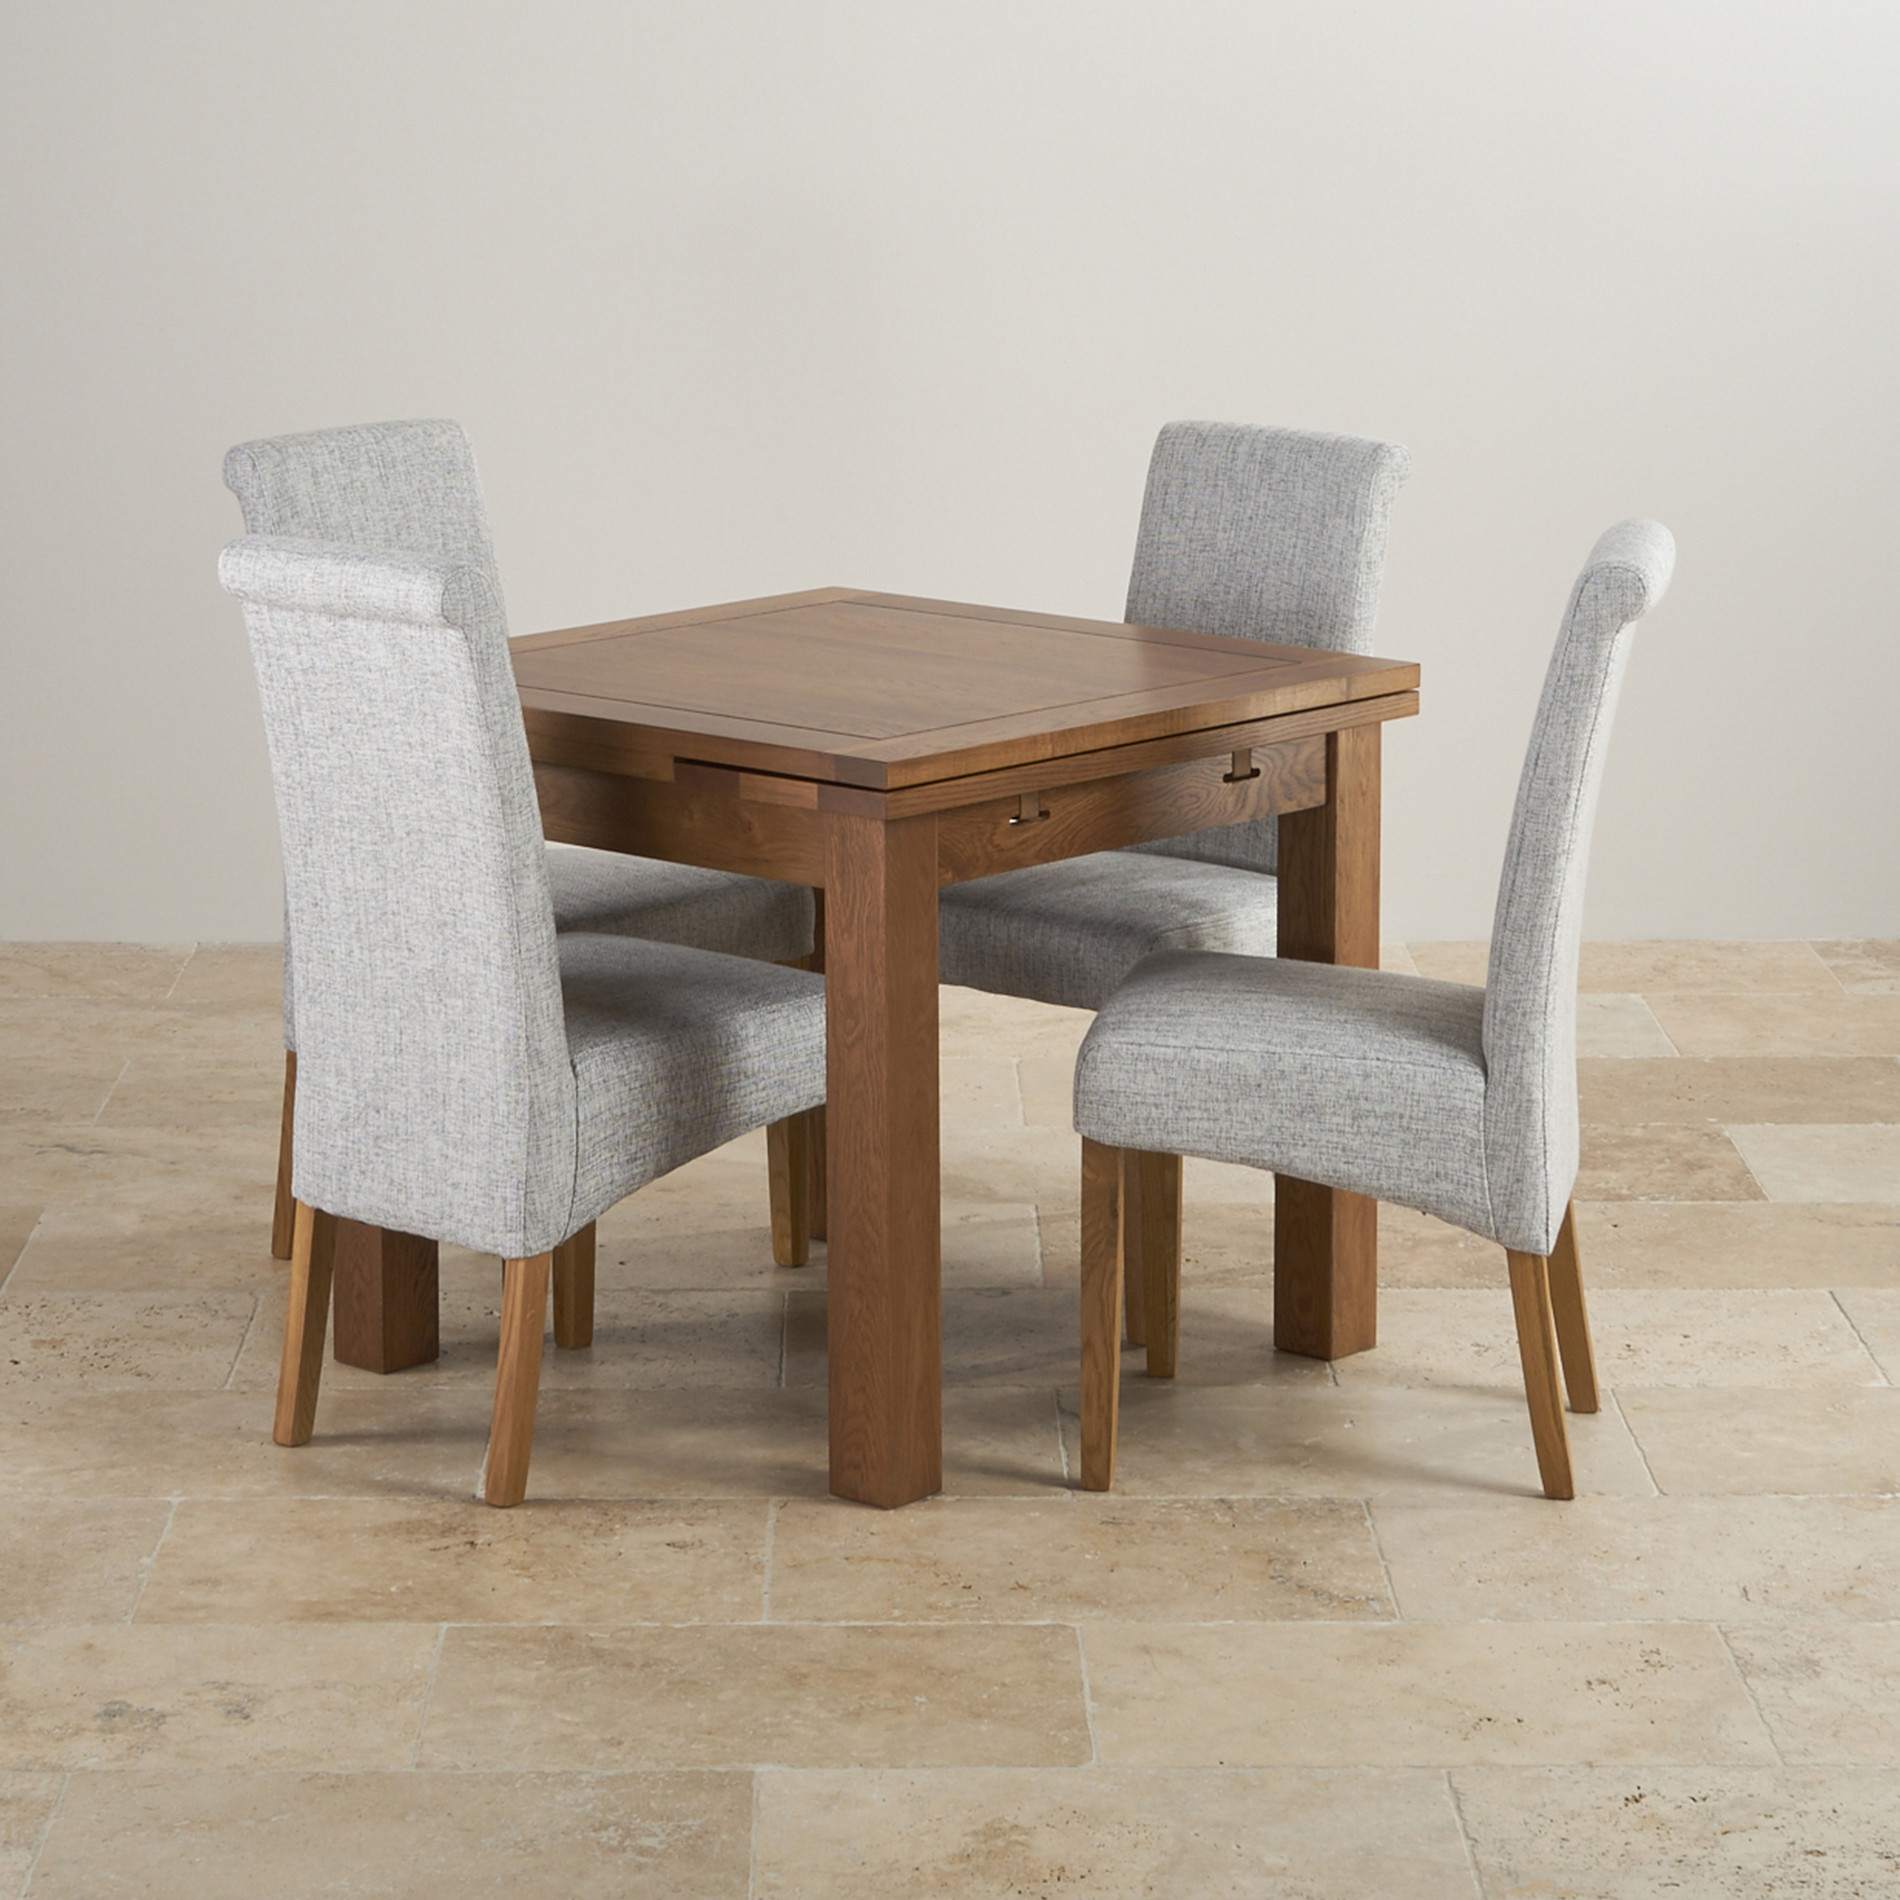 Rustic Oak 3ft Dining Table With 4 Grey Fabric Chairs